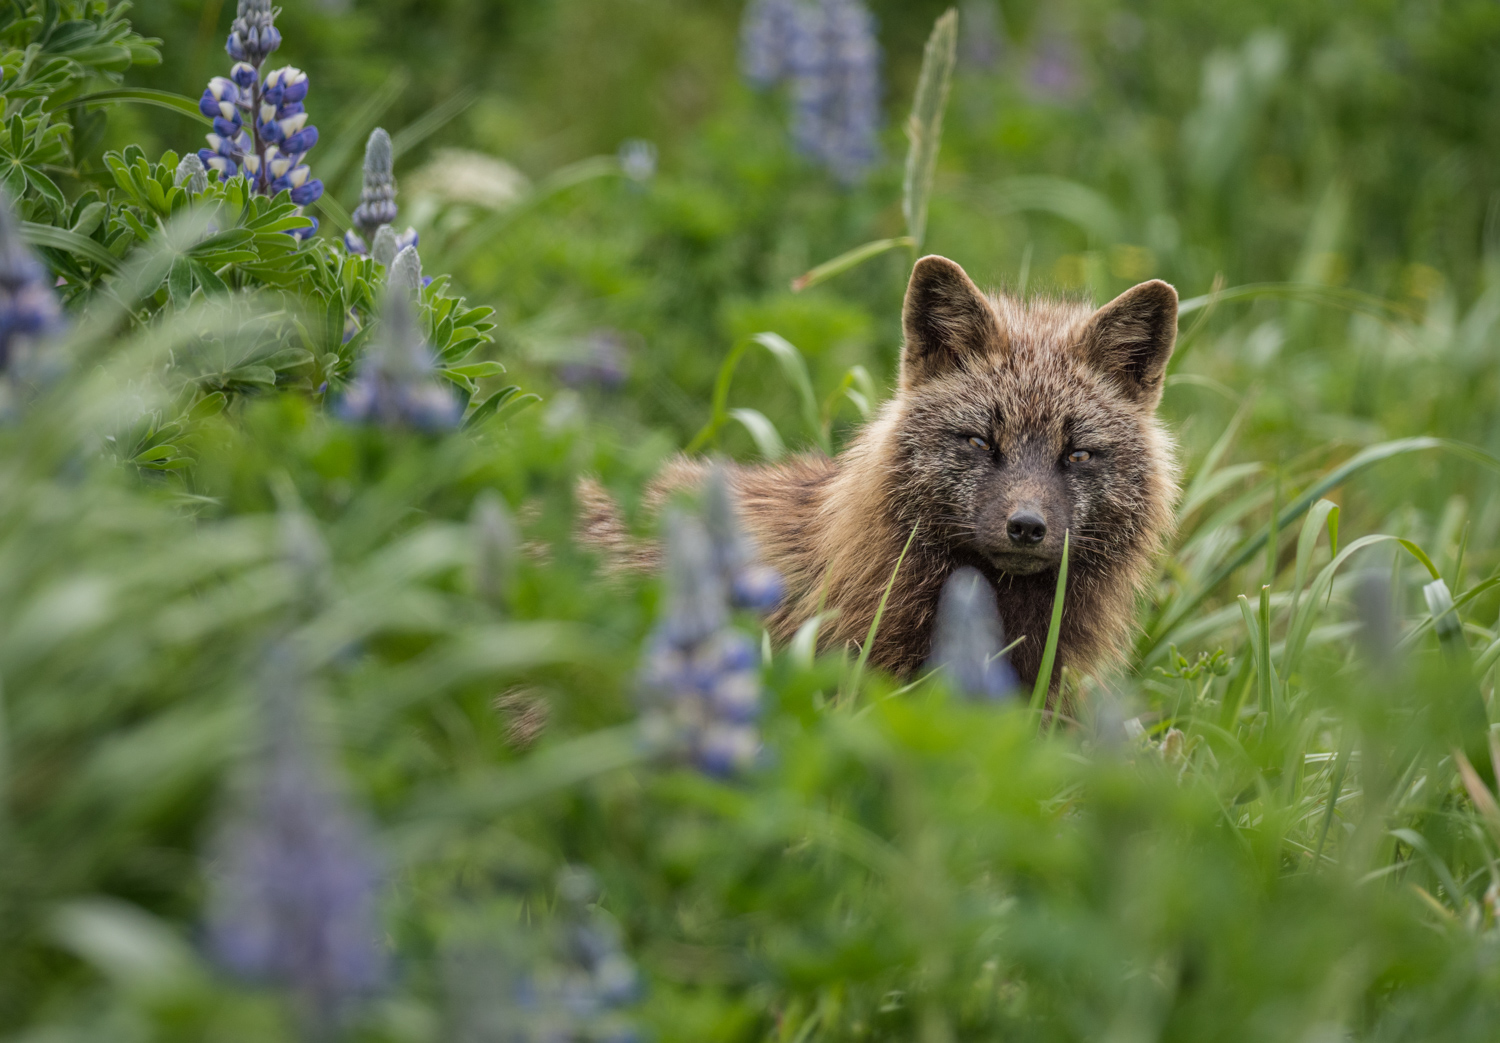 Review of the Olympus 300mm F4 PRO Lens - fox in the grass